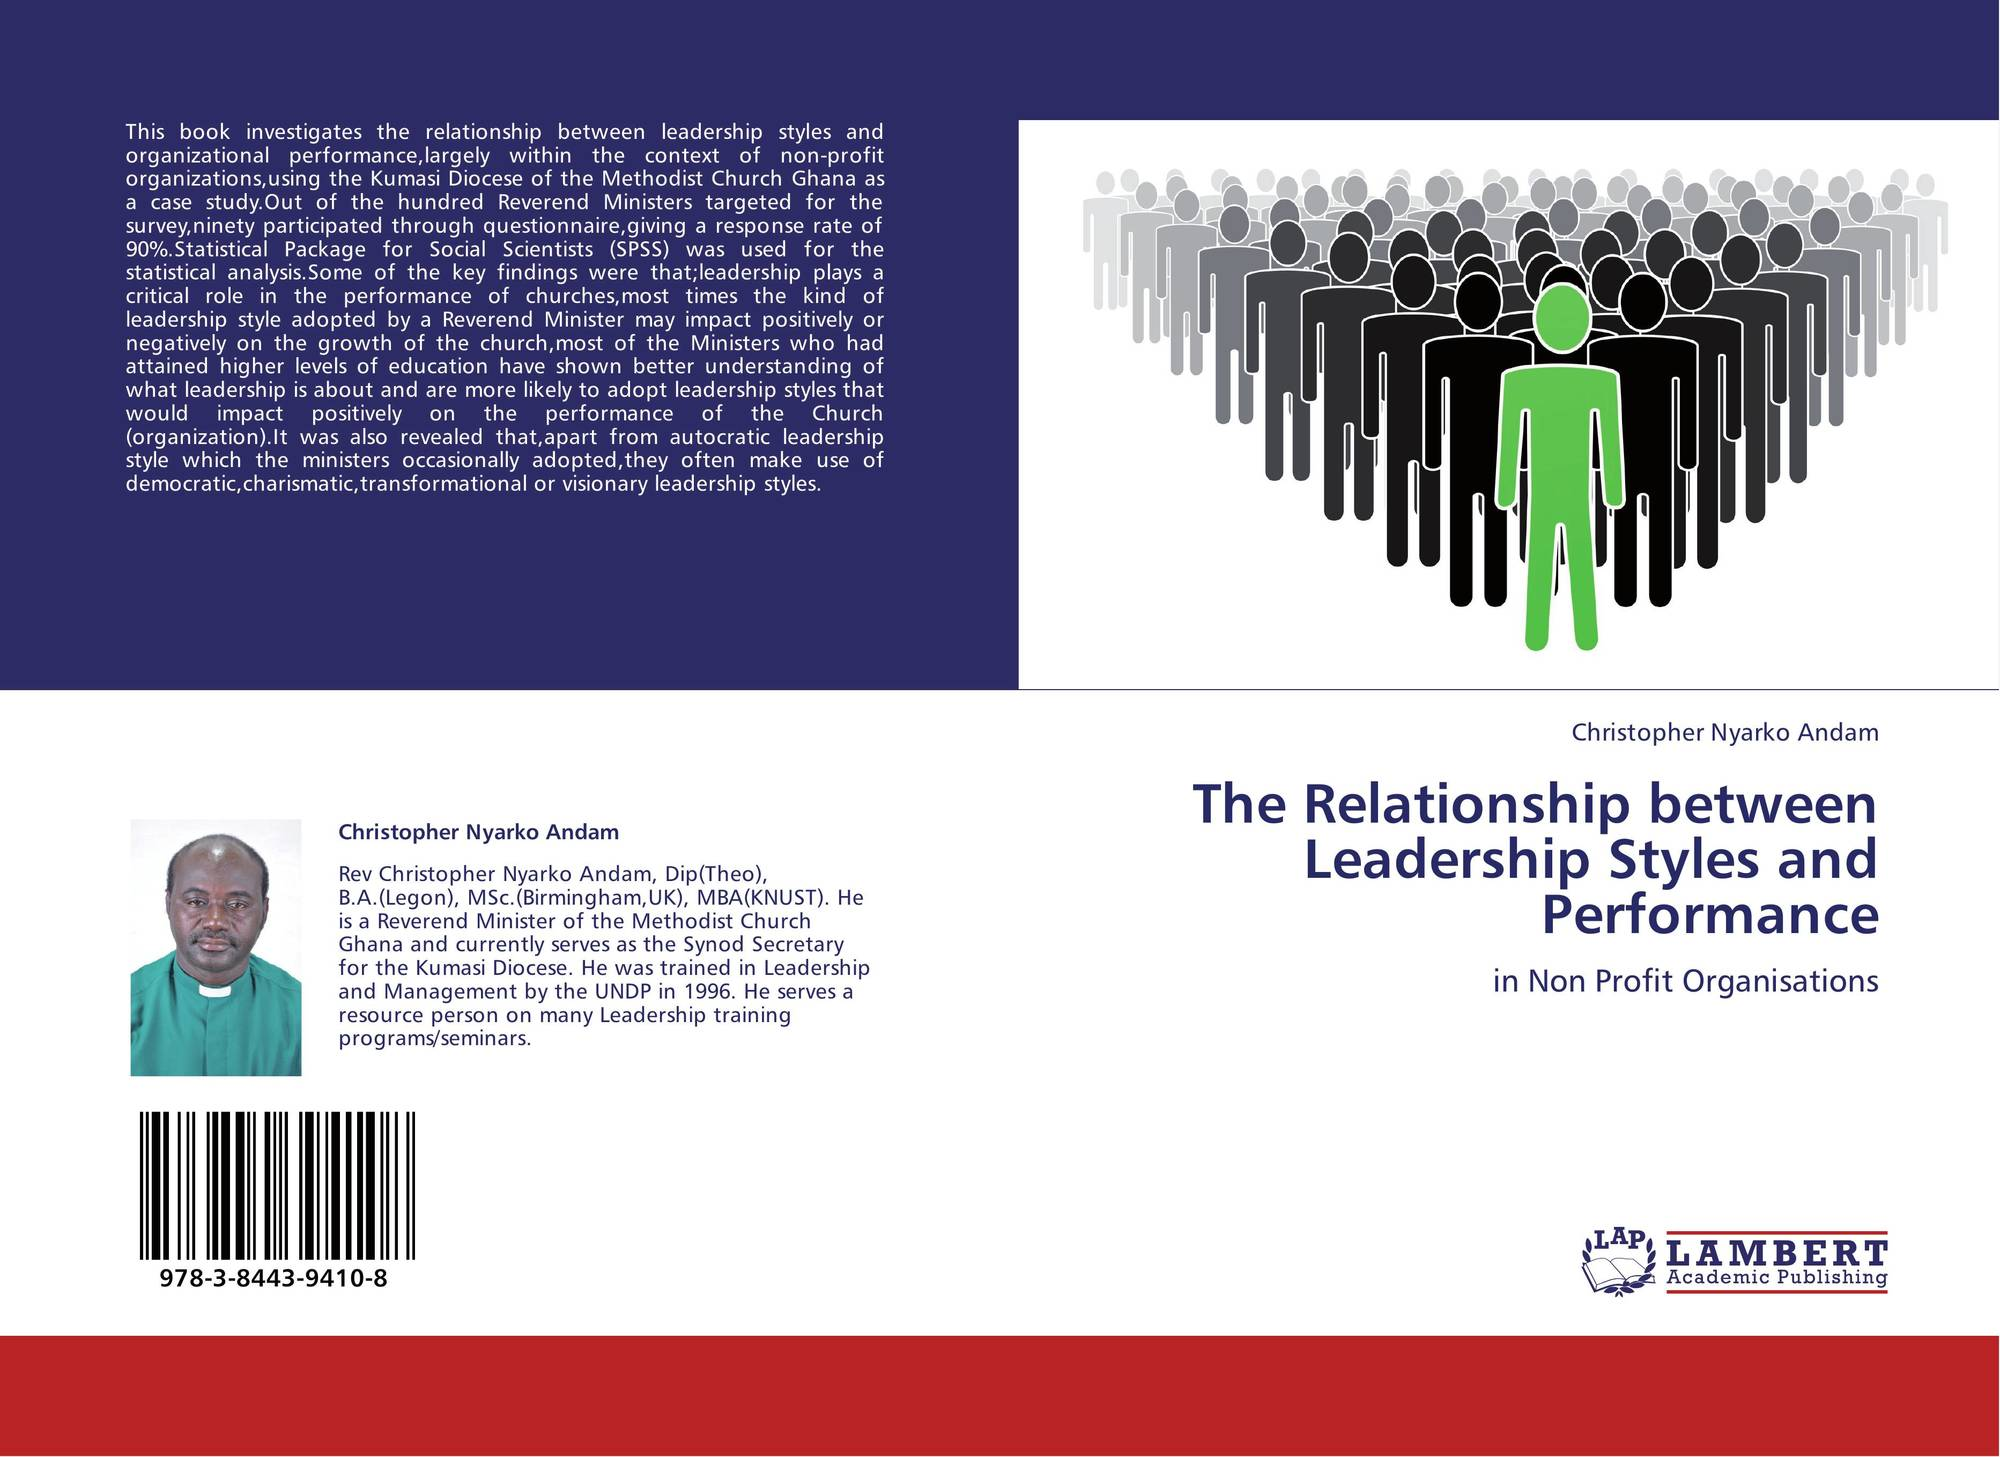 relation between leadership style employee The figure shows that leadership style may have a positive association with employee satisfaction and a negative relationship with sickness absence (which means that if a manager has a better leadership style, the employee absenteeism decreases), as described above this is especially the case if the leadership has a transformational style.